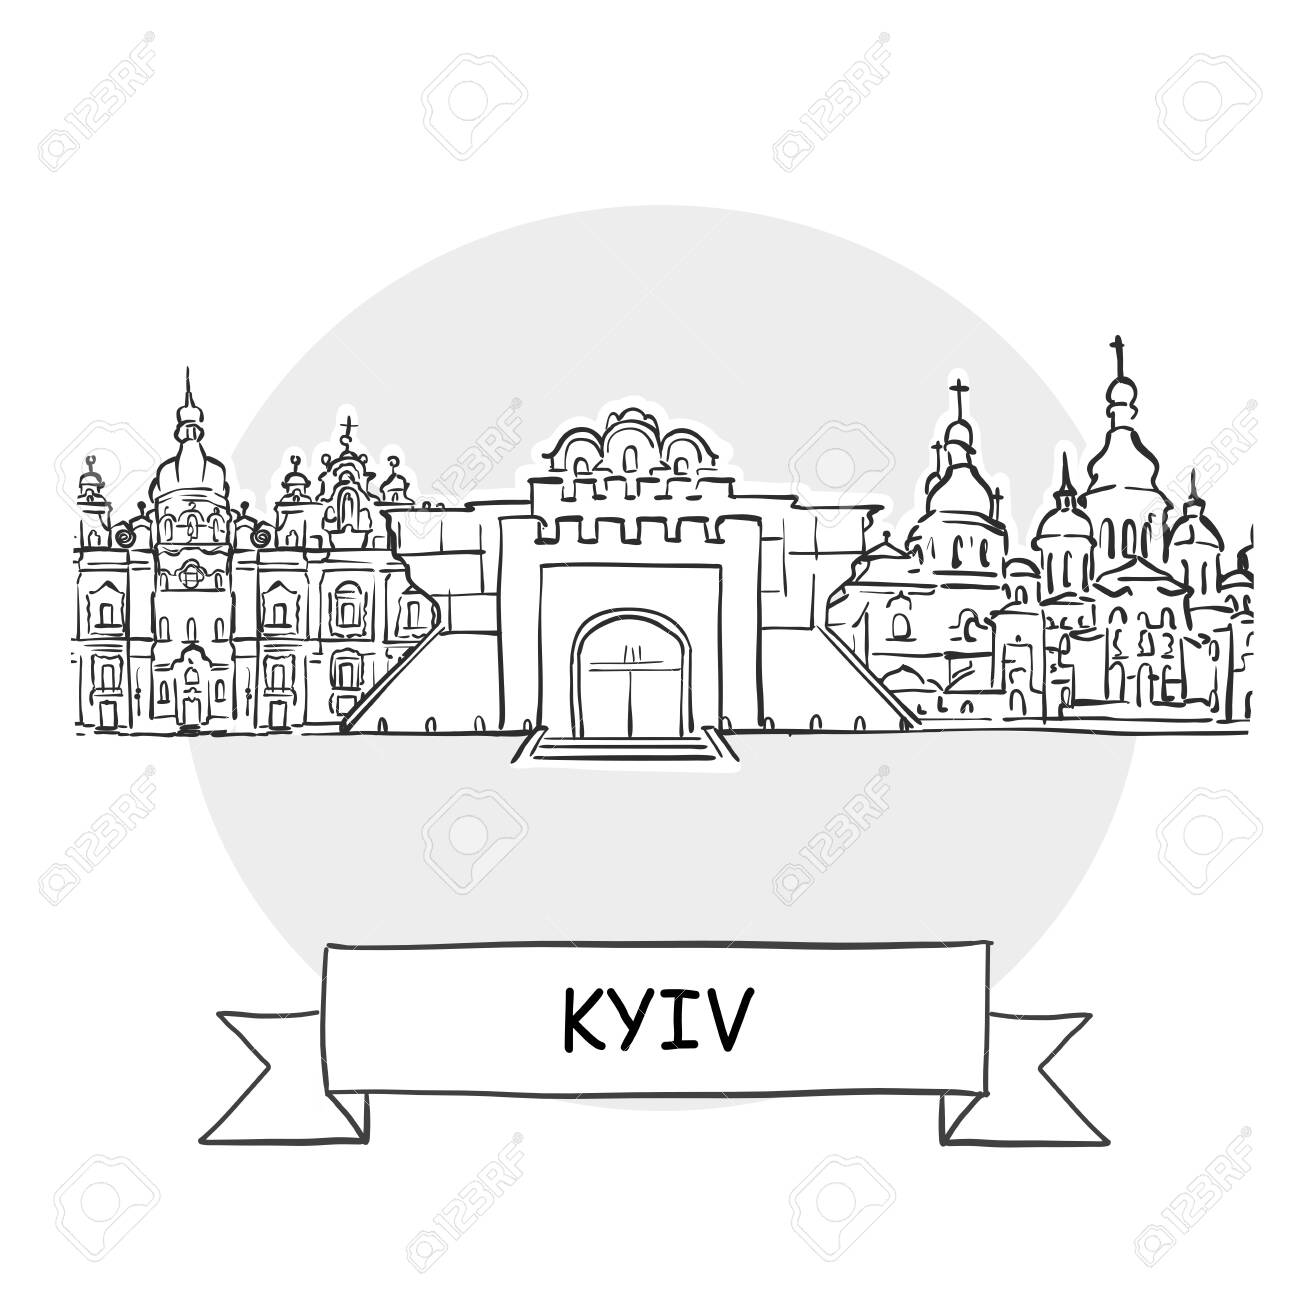 Kyiv Cityscape Vector Sign. Line Art Illustration with Ribbon and Title. - 142021965